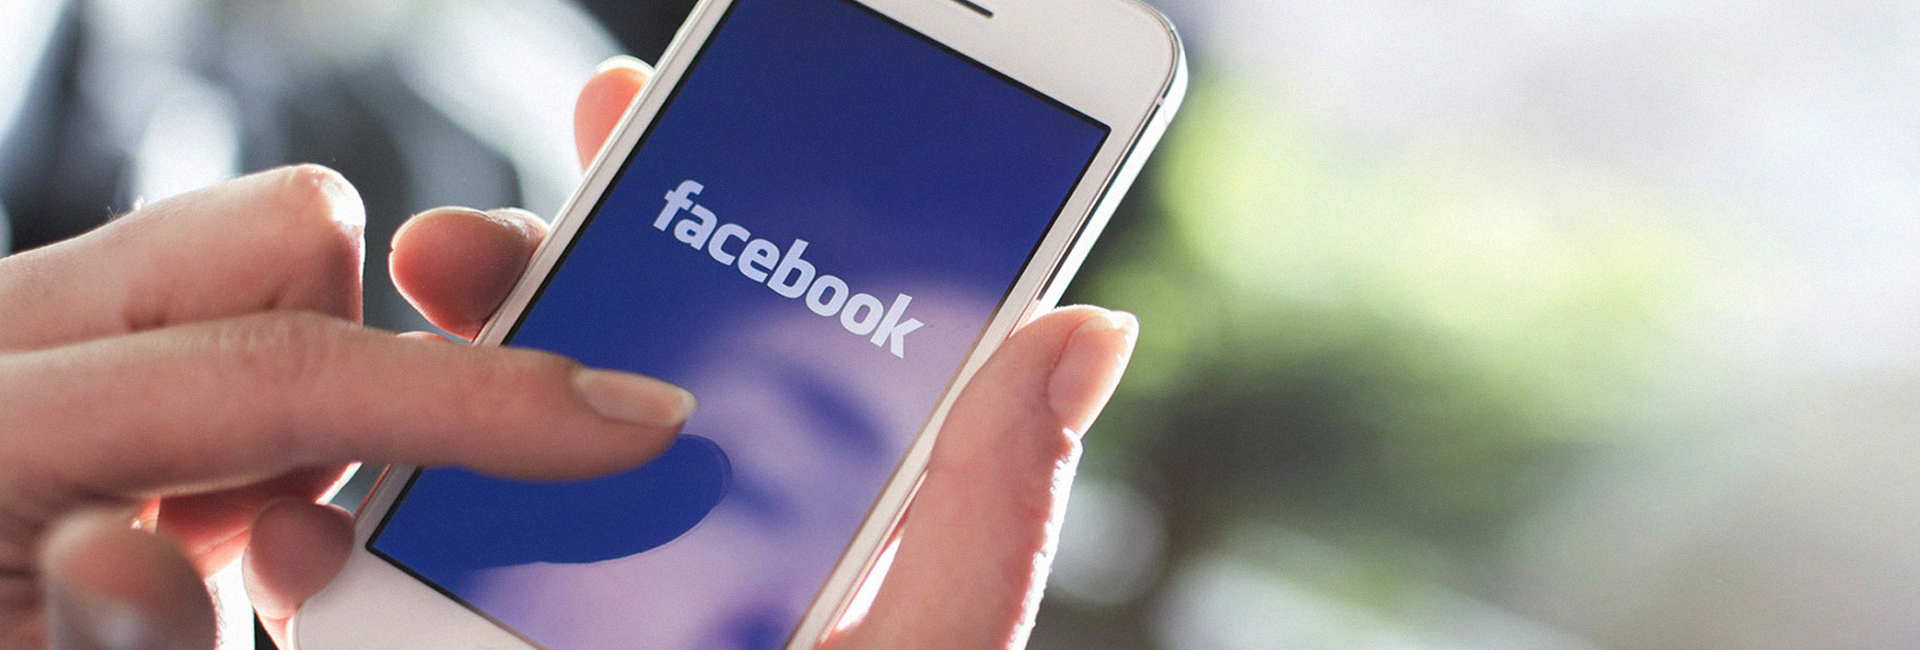 Relying on Facebook? Here's what you should know